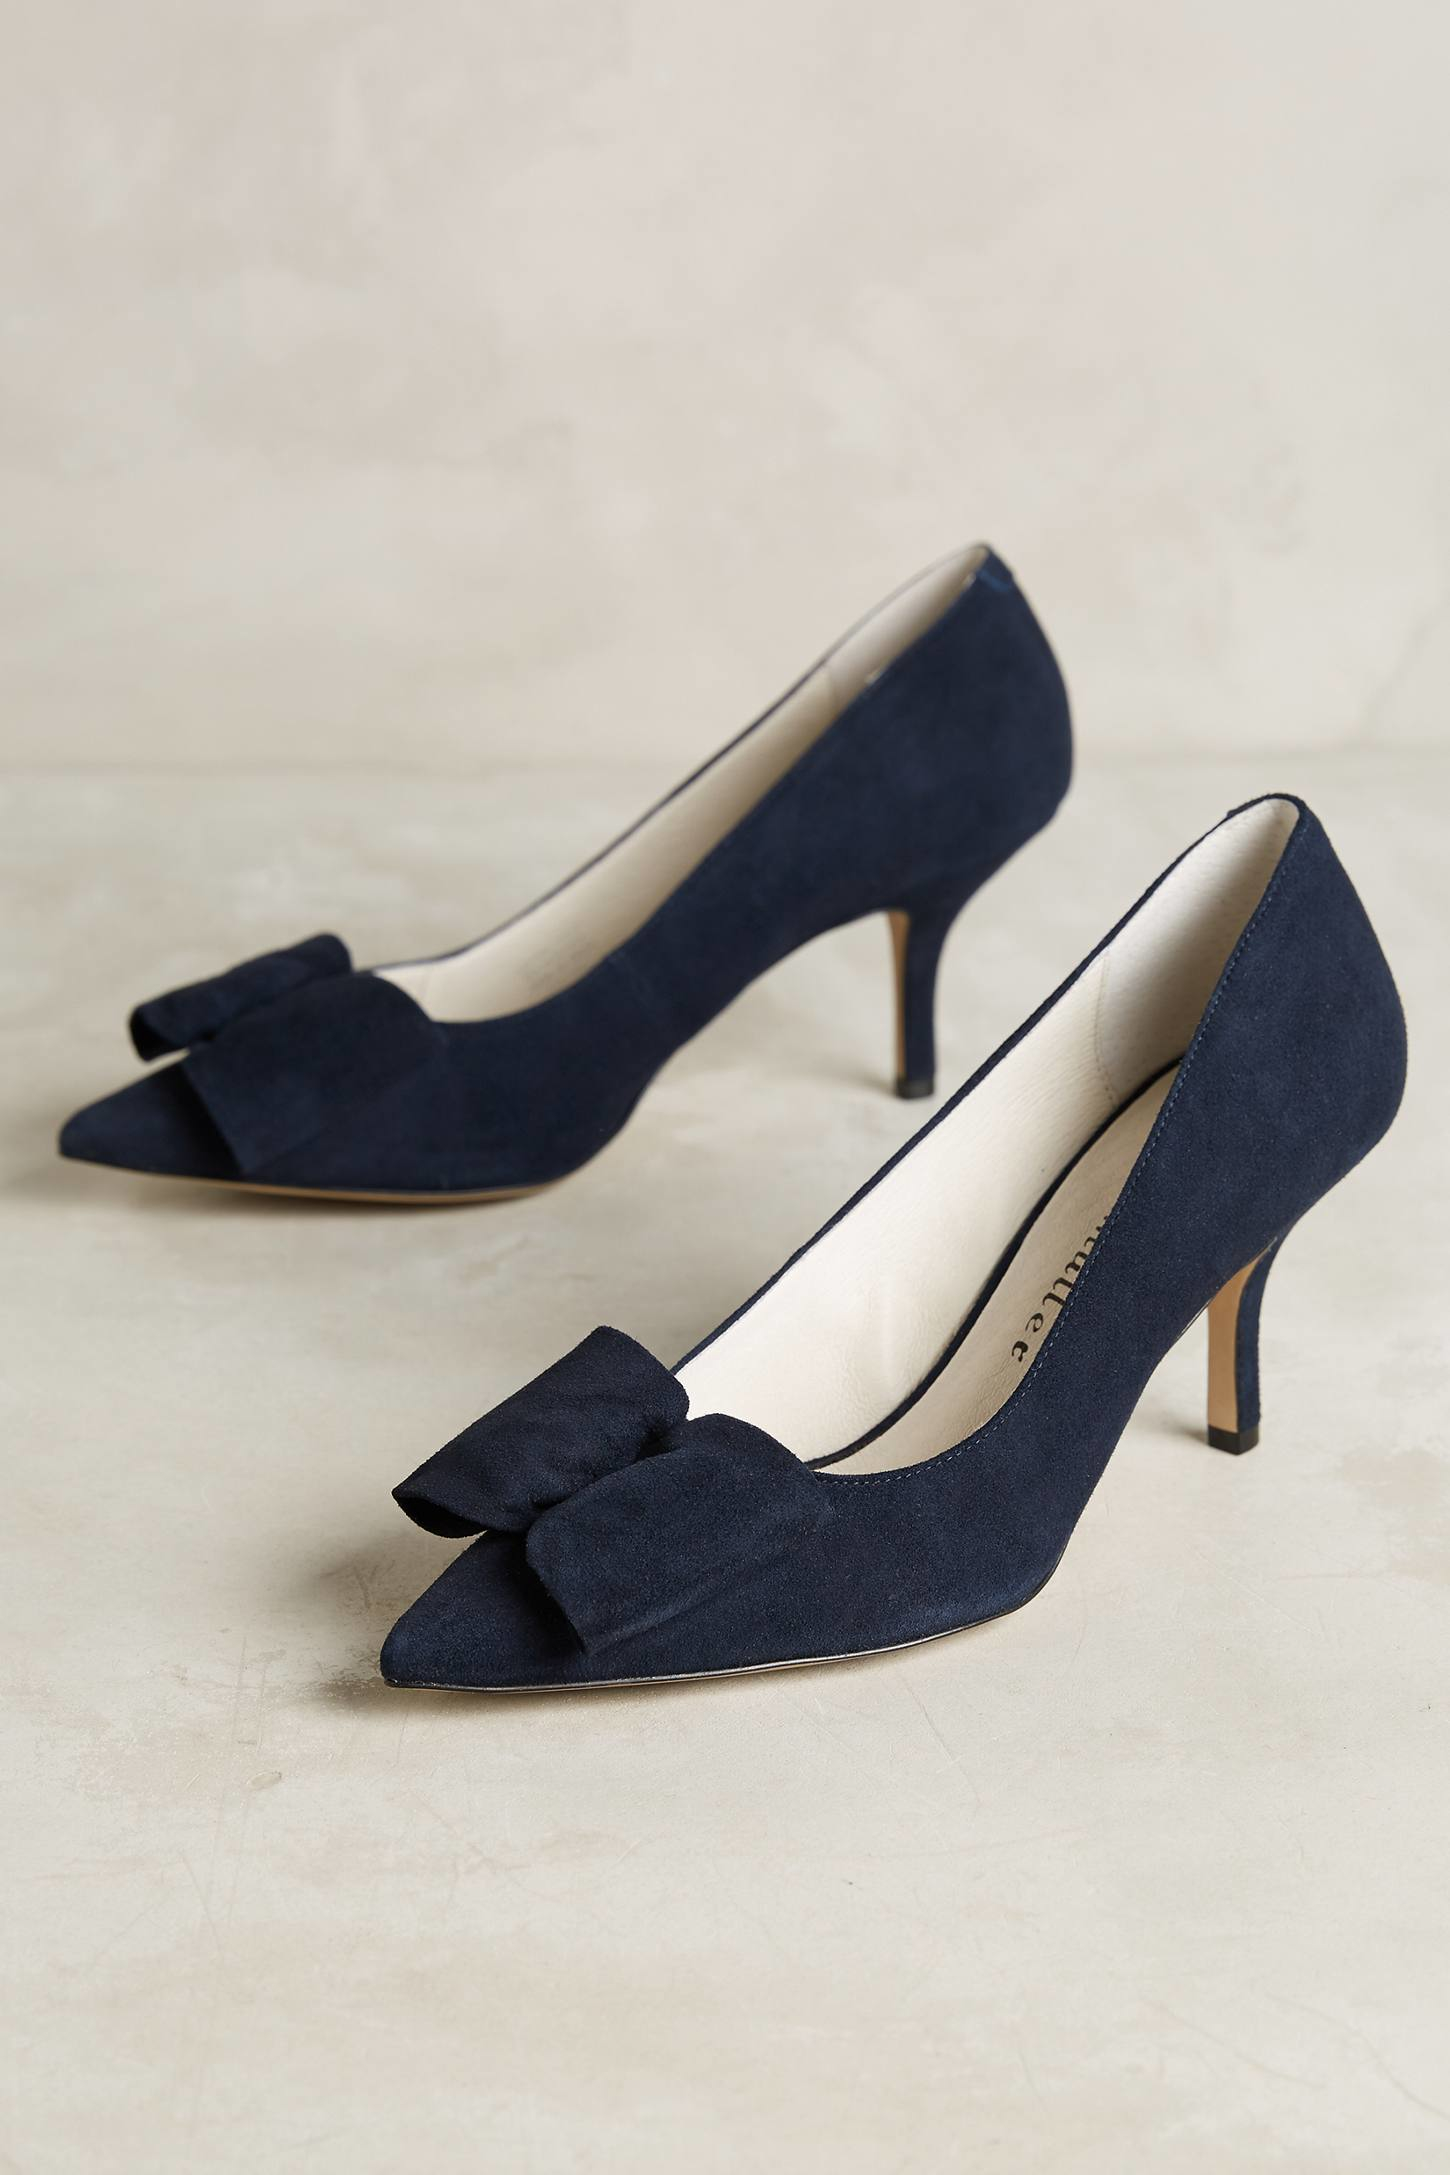 Lyst - Bettye muller Affair Kitten Heels in Blue